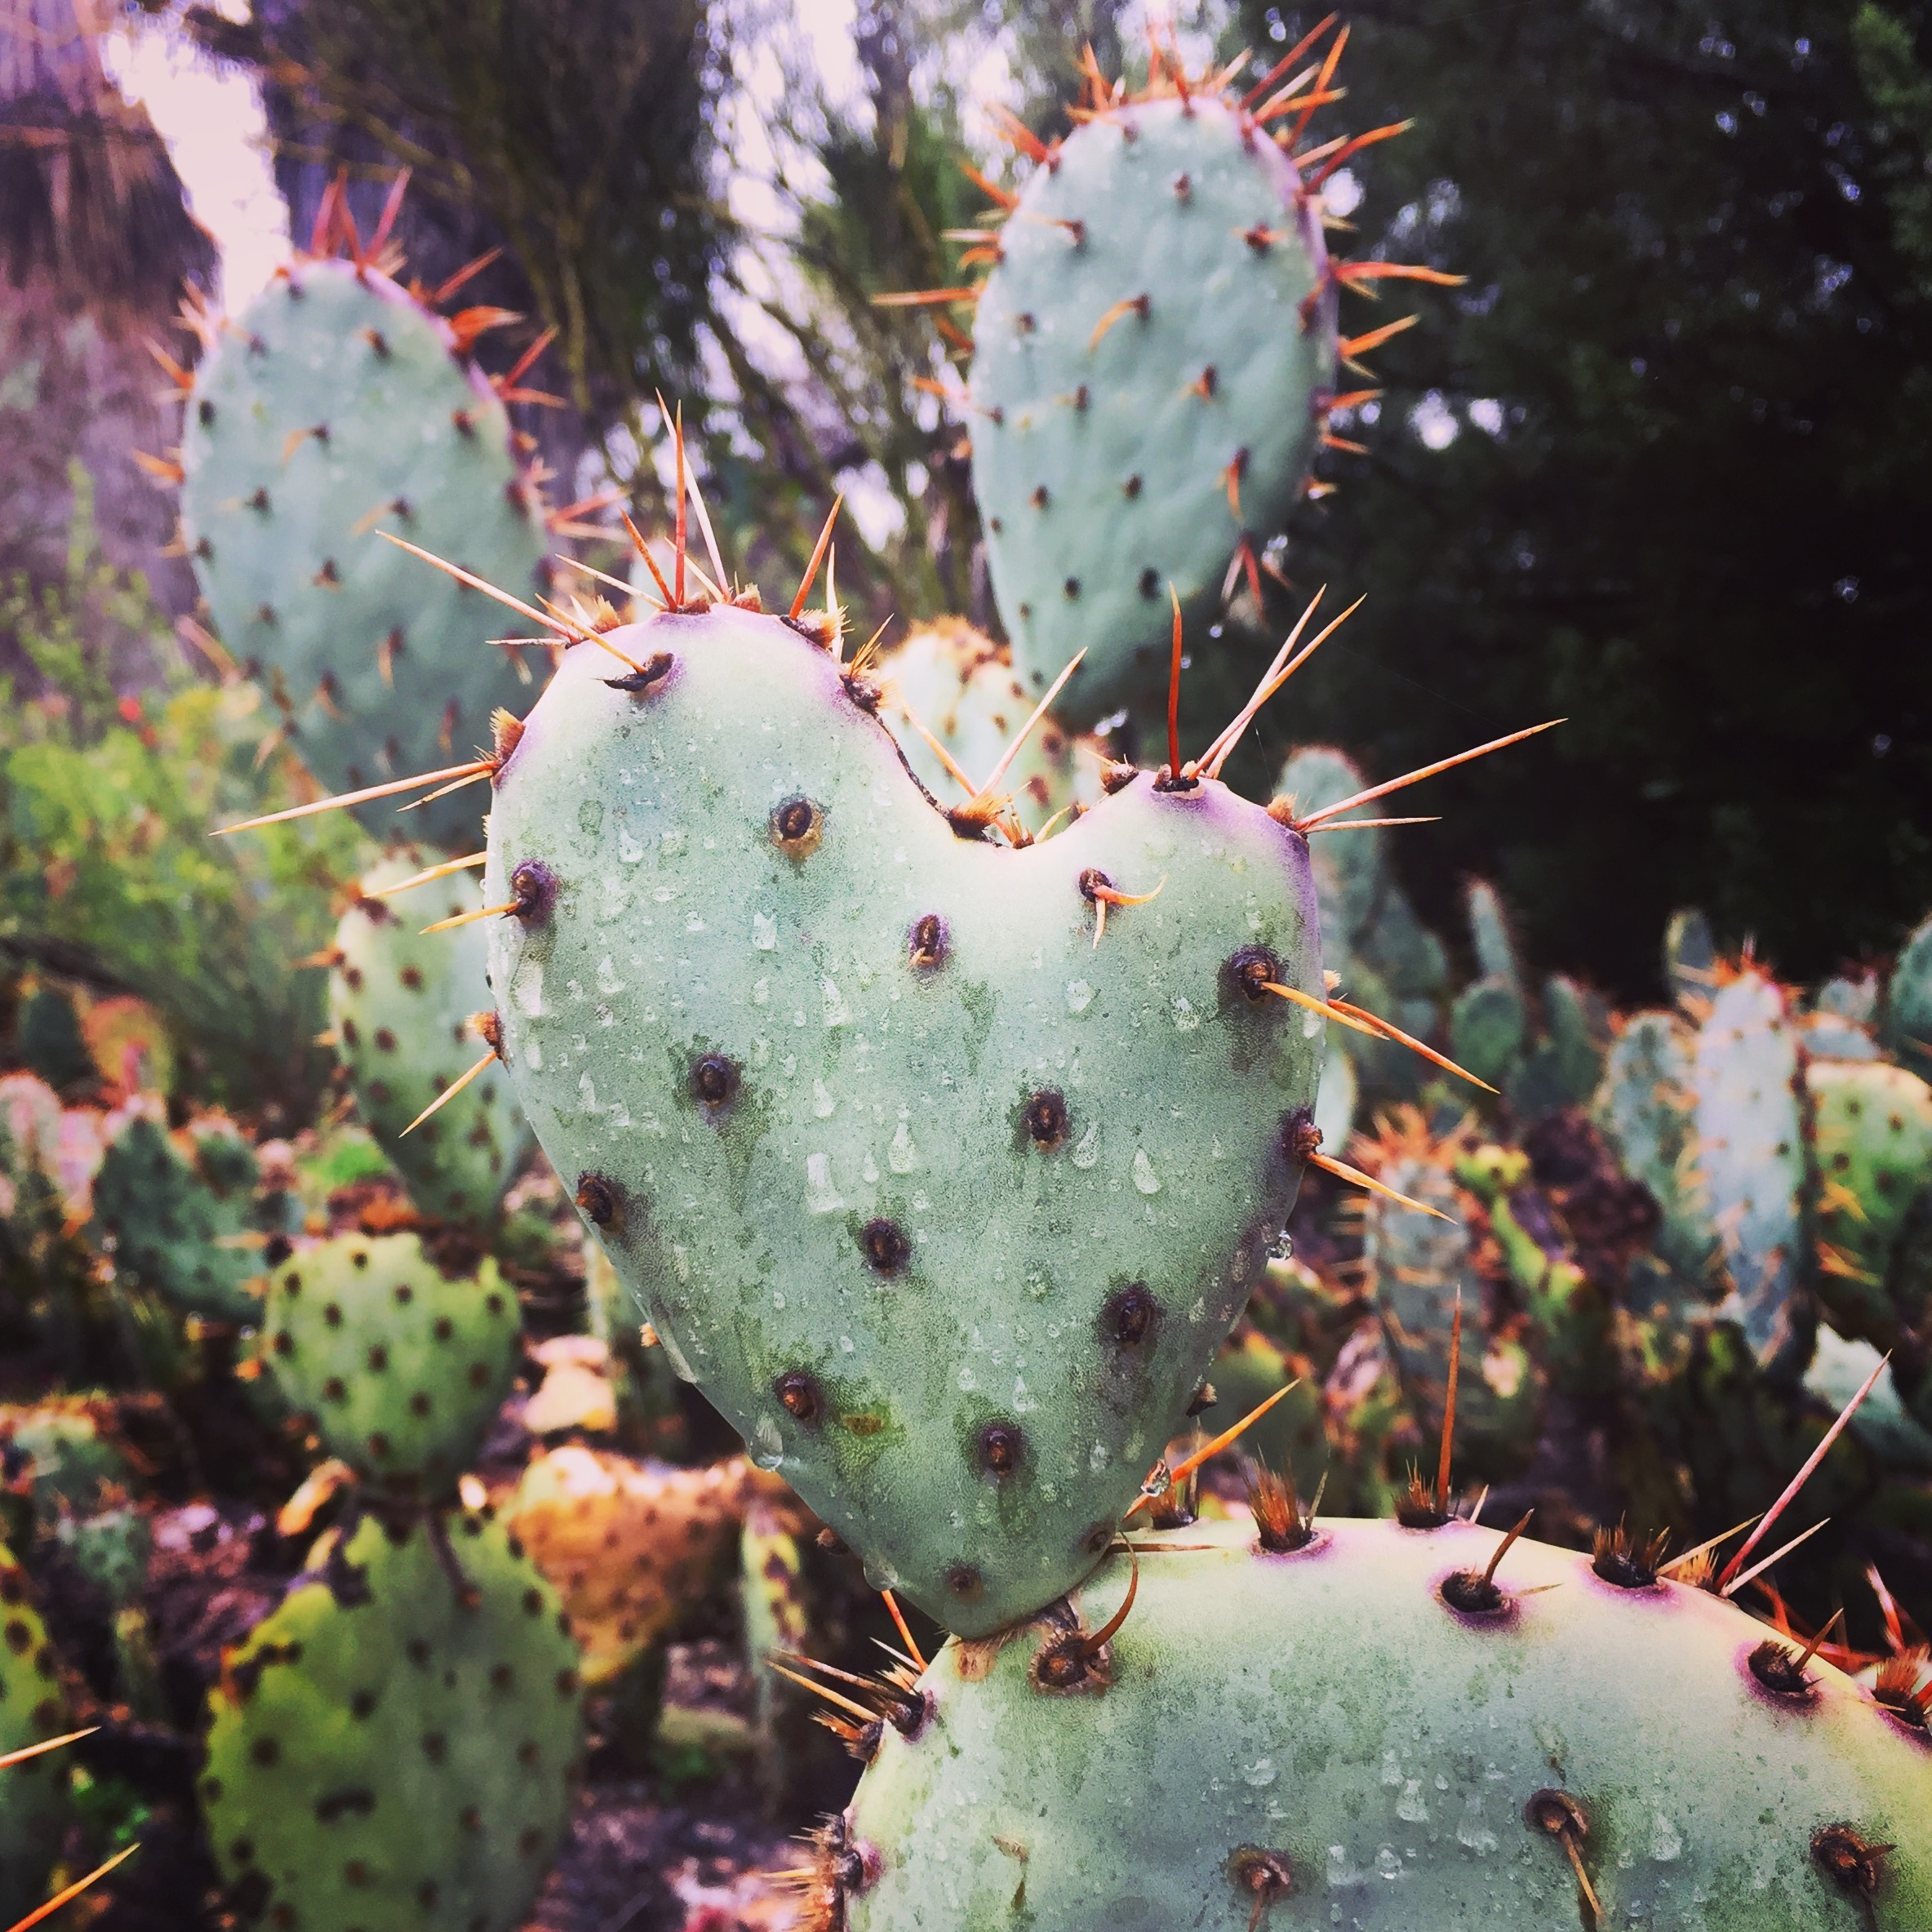 Opuntia (Prickly Pear Cactus) with a heart-shaped stem at the Rancho Santa Ana Botanic Garden